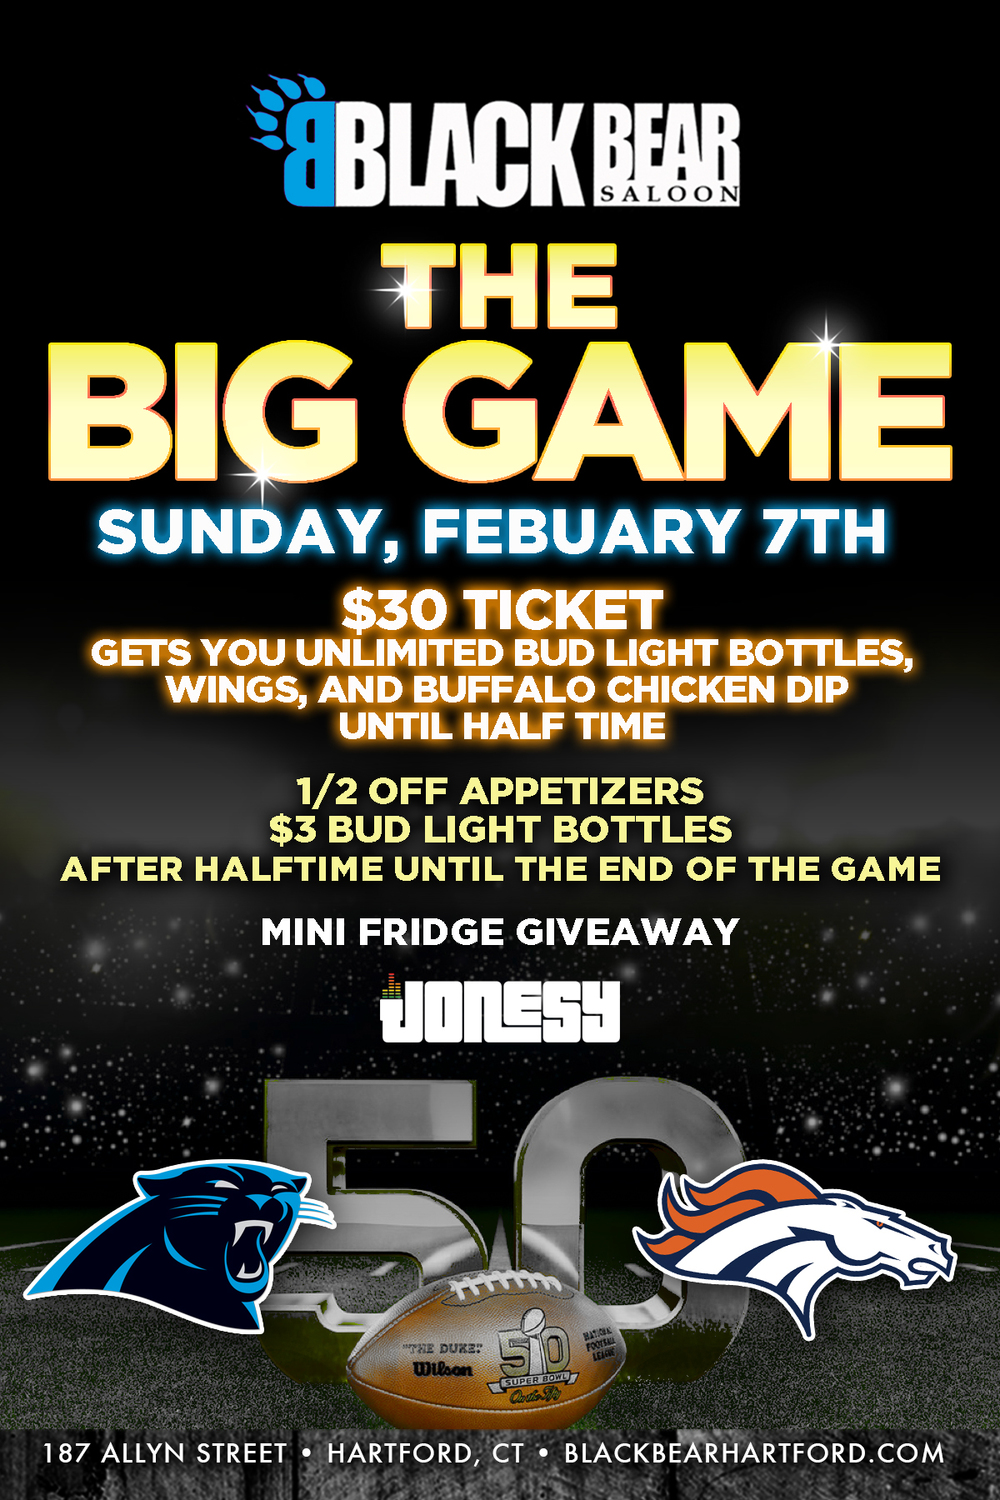 SUPER BOWL SUNDAY JOIN US AT BLACK BEAR IN DOWNTOWN HARTFORD FOR THE BEST PLACE IN CT TO WATCH TO BIG GAME.  TVS ALL OVER, PLENTY OF RAFFLES AND GIVEAWAYS, AND TONS OF FOOD & DRINK SPECIALS.  MUSIC BY YOURS TRULY DURING AND AFTER THE GAME.  MEET ME THERE! #SUPERBOWL50